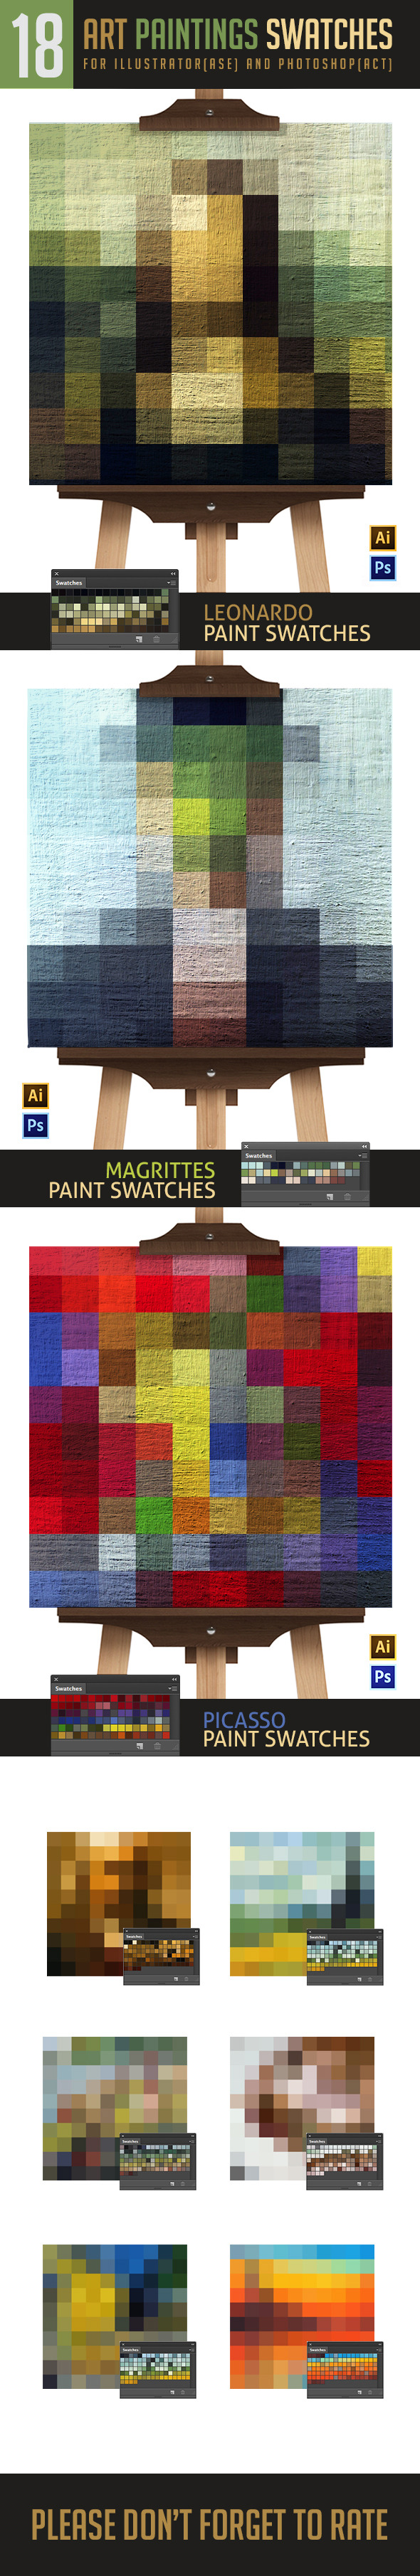 Famous Paintings Swatches For Photoshop and Illust - Illustrator Add-ons